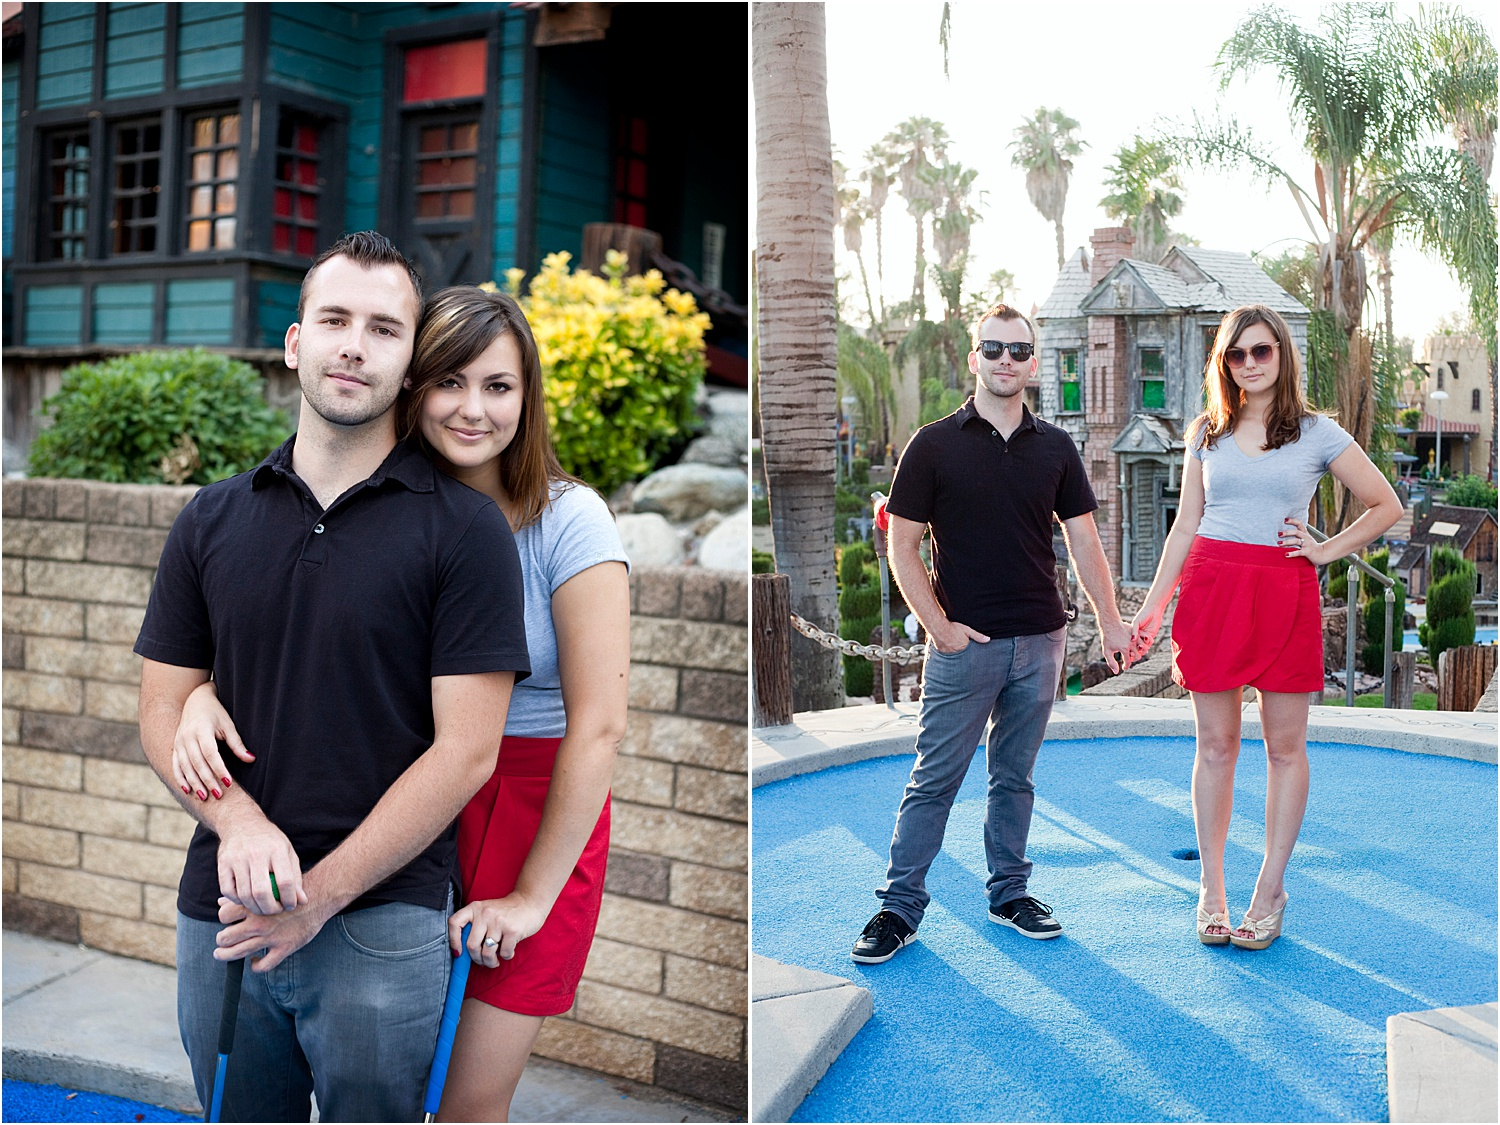 8 - Guide to the Best Poses for Engagement Photos